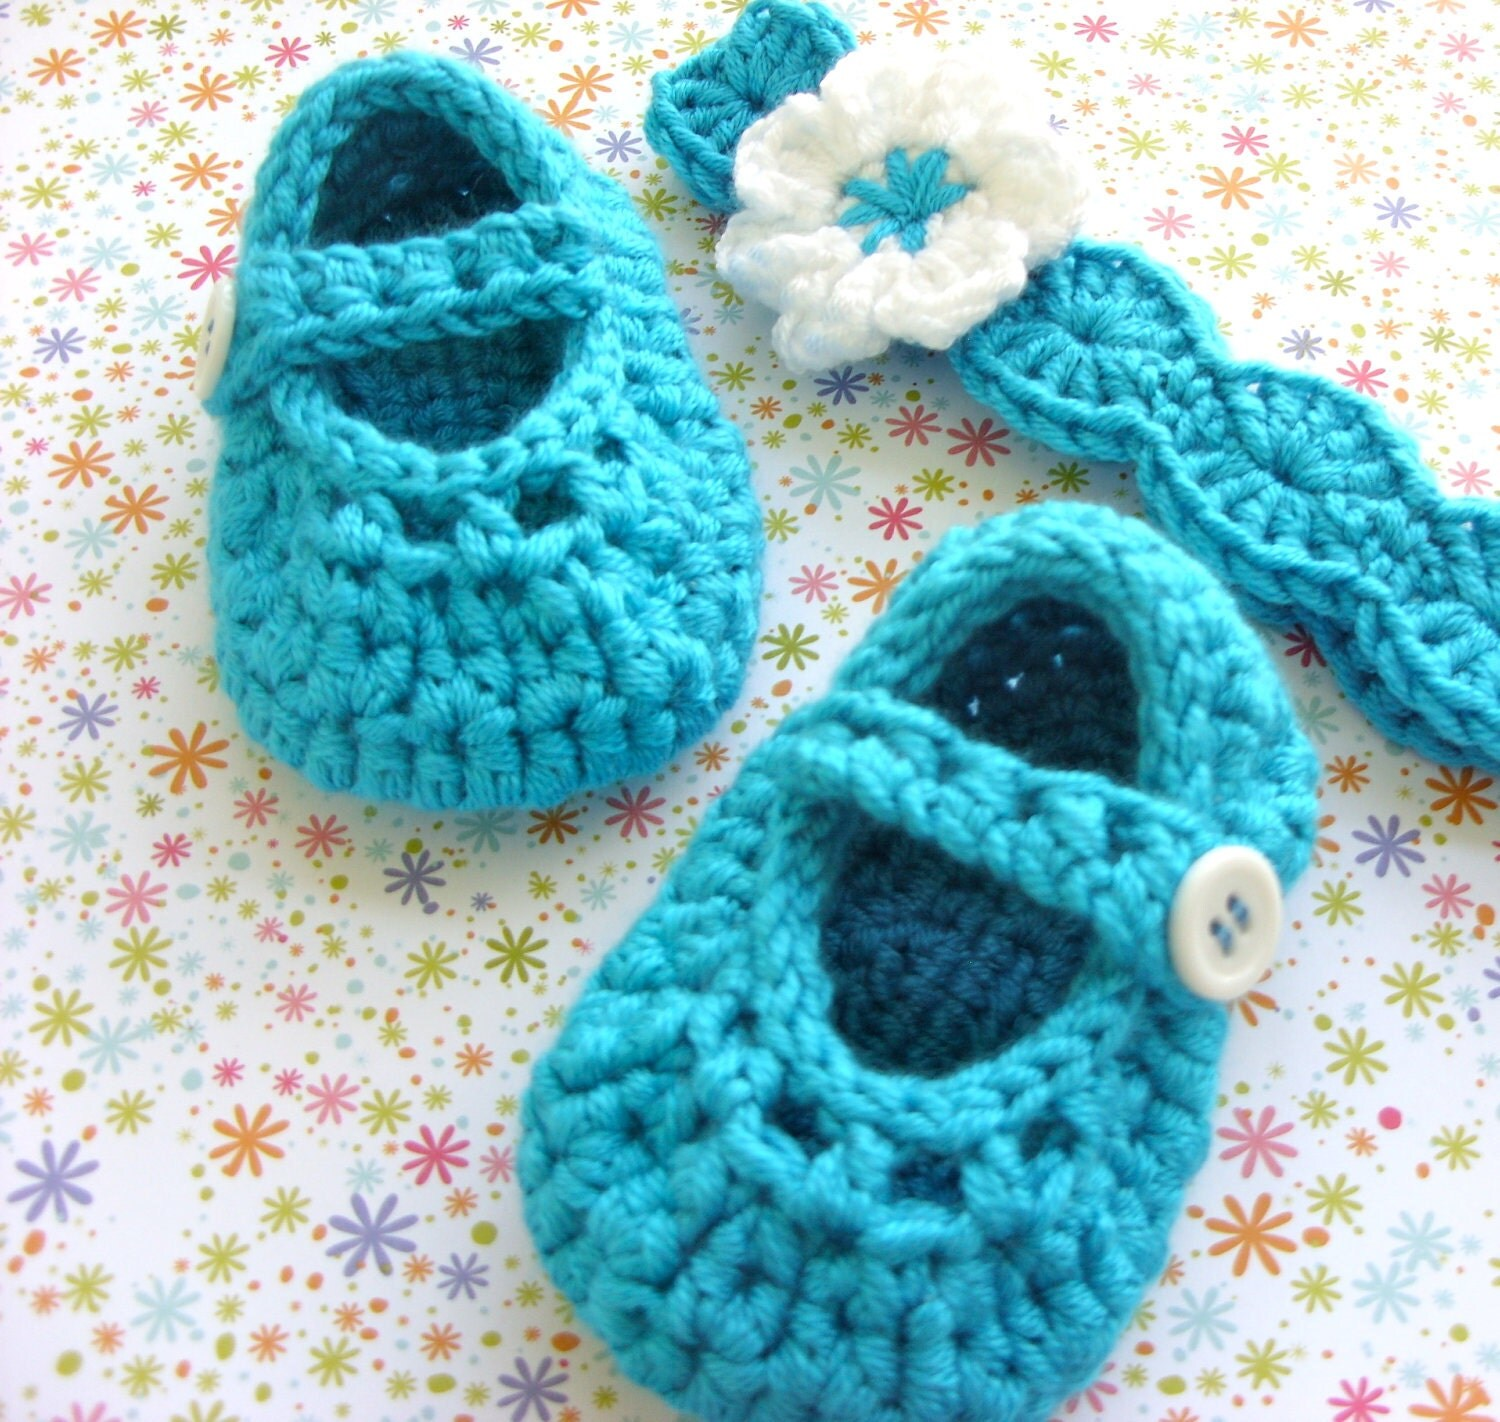 Crocheted Baby Shoes - Mary Jane Booties and Flowered Headband